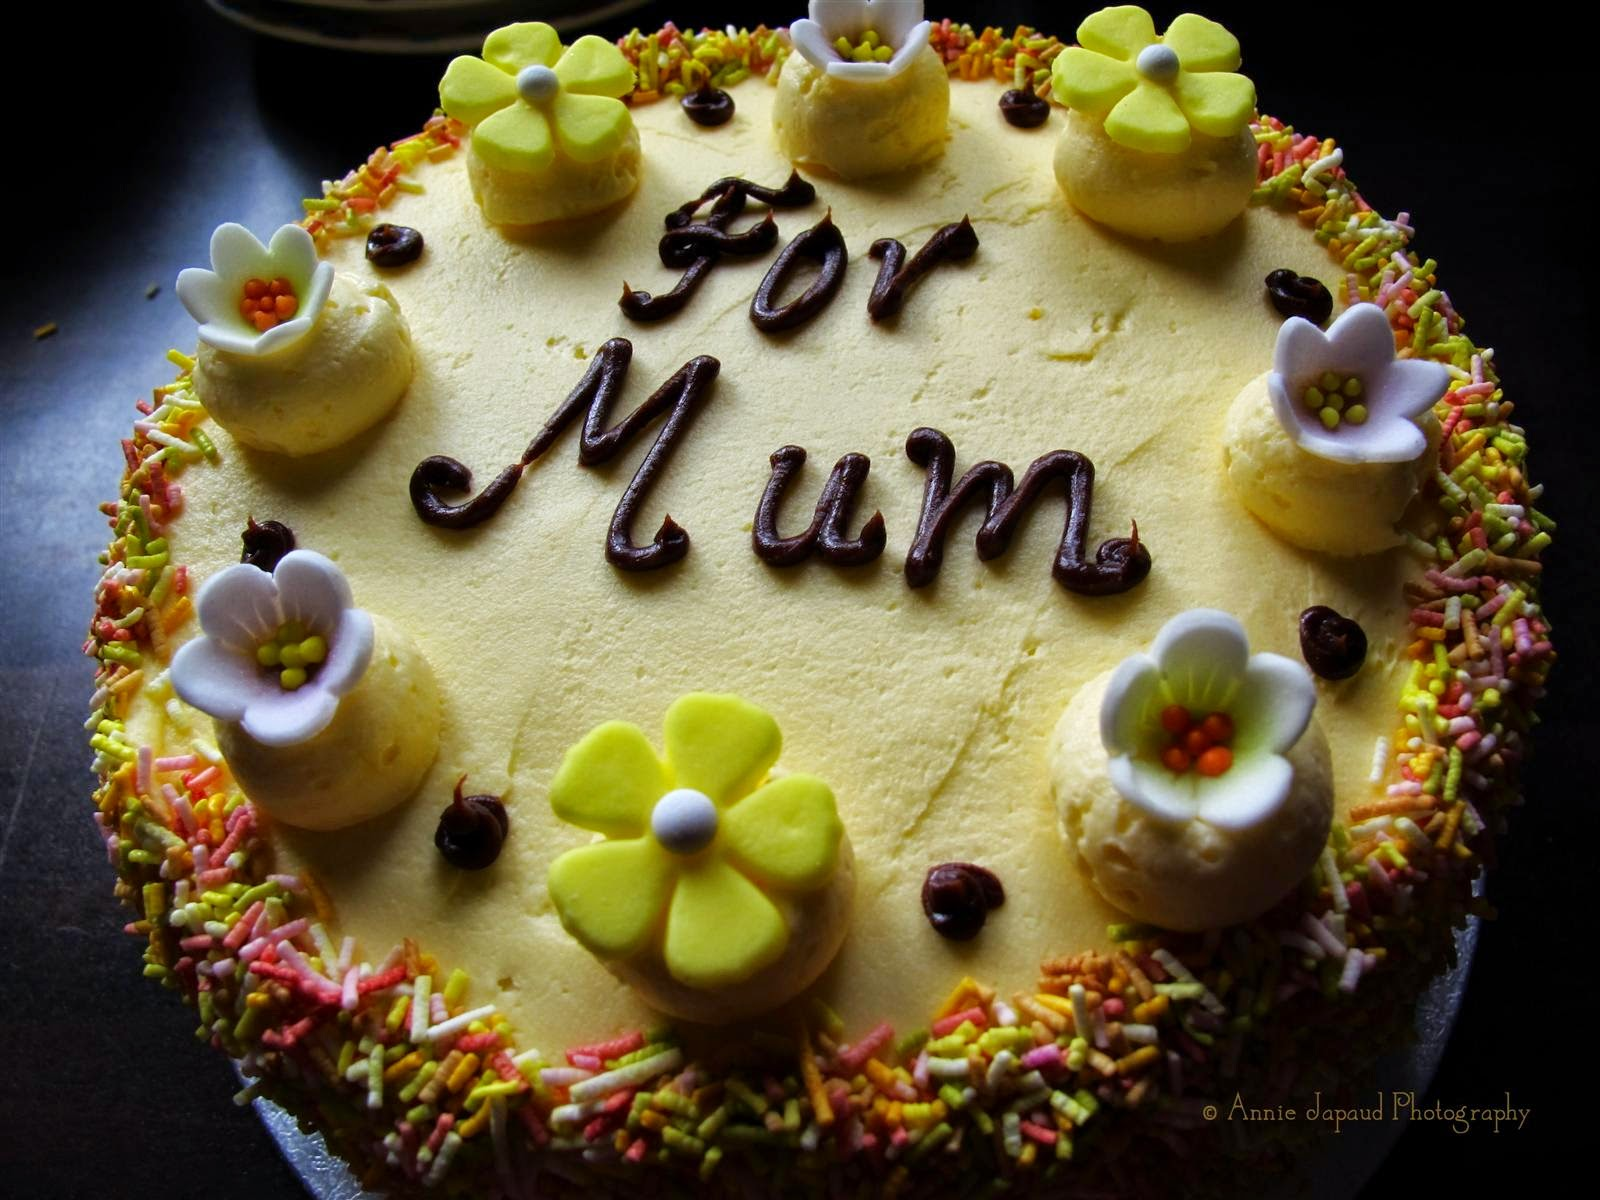 lemon butter cream cake for mother's day